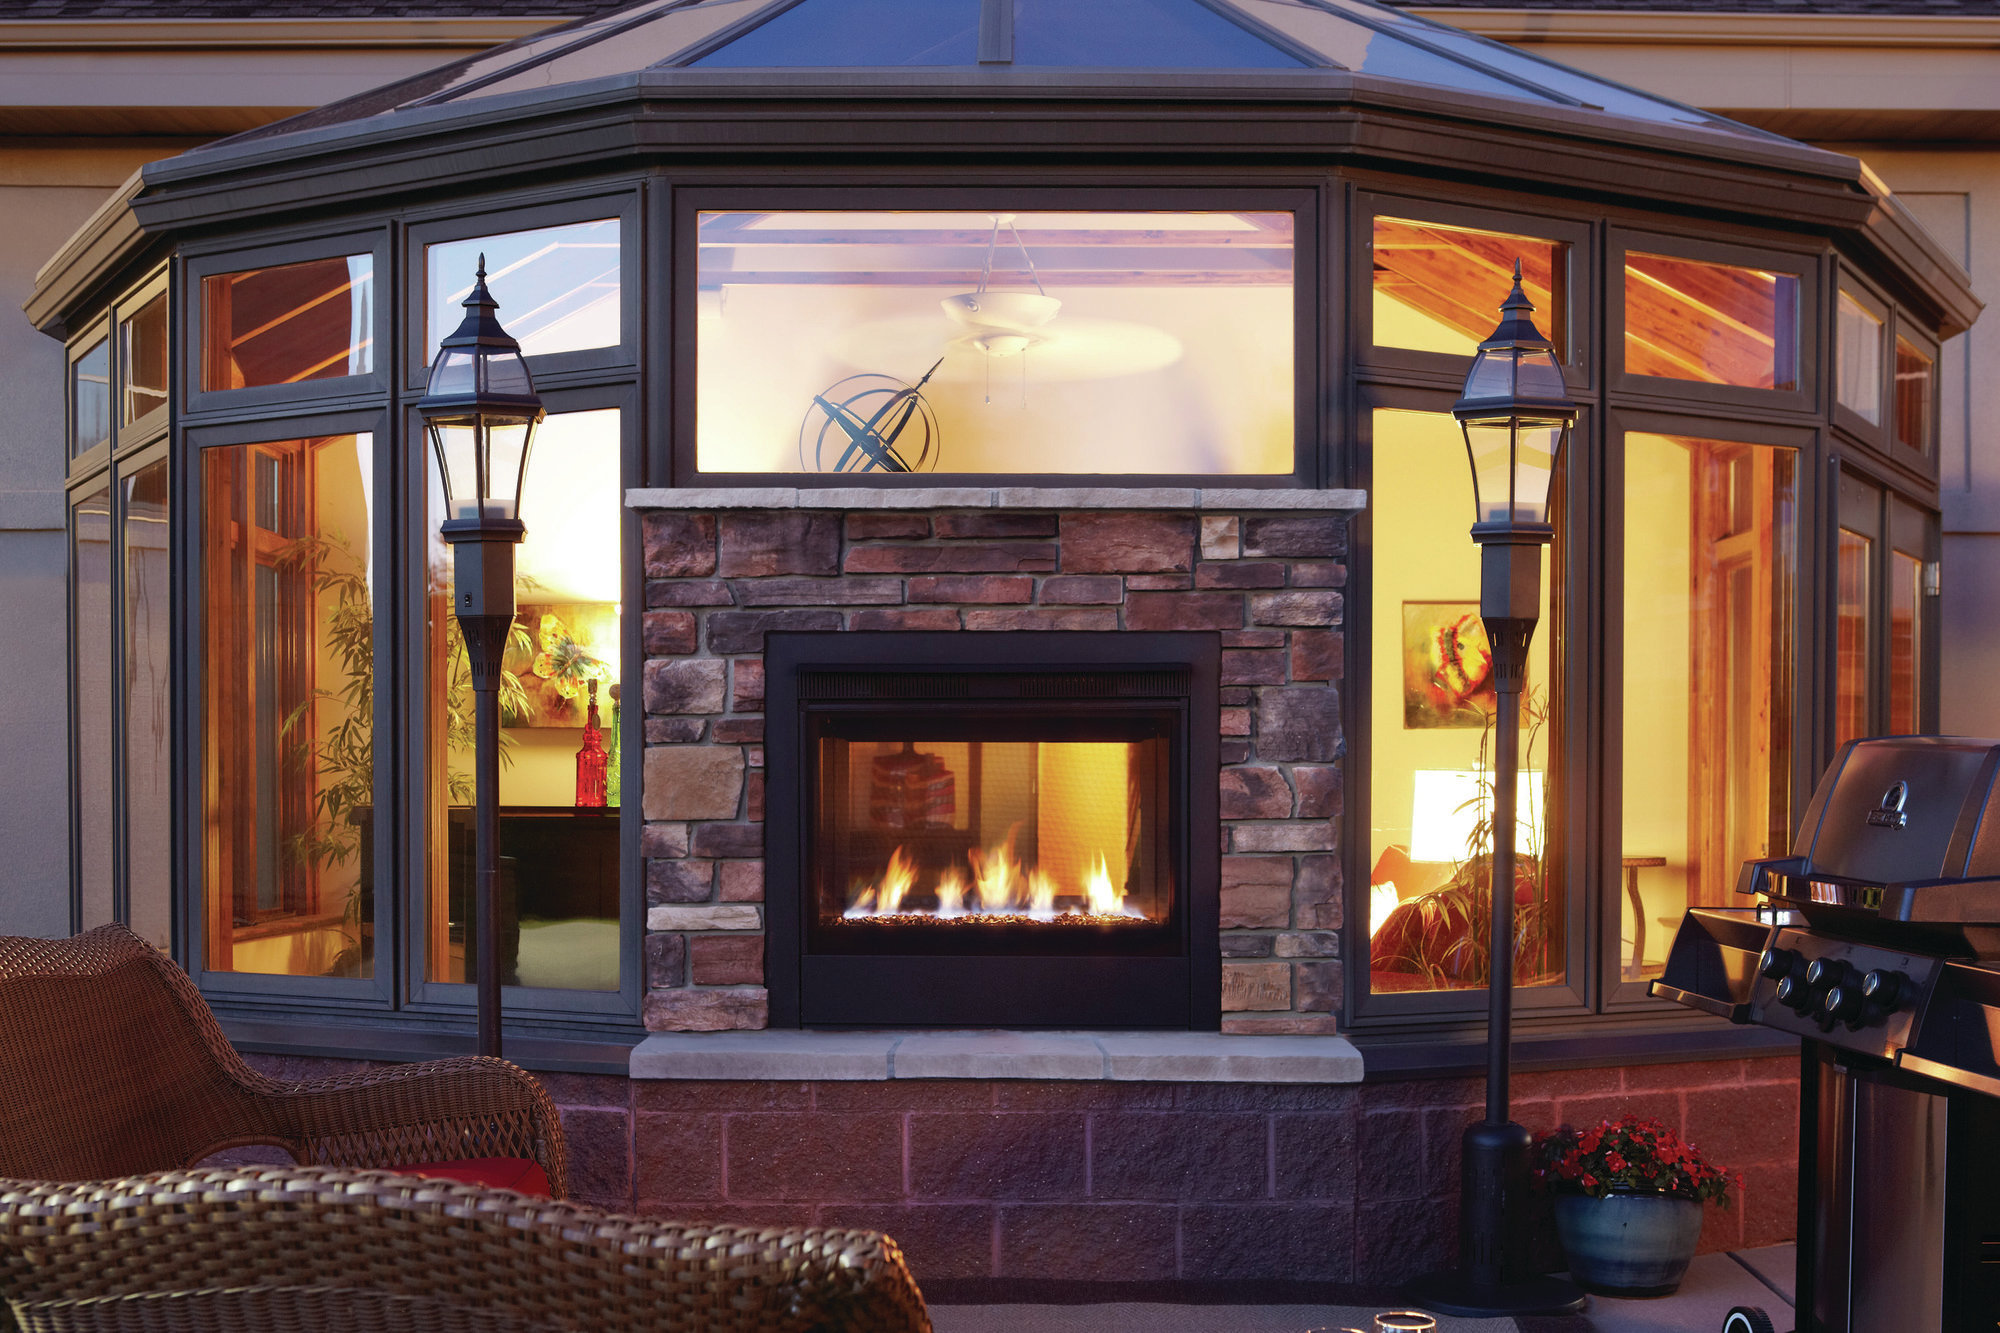 Double the Design Heat N Glo Twilight Modern TwoSided Gas Fireplace  Remodeling  Fireplaces